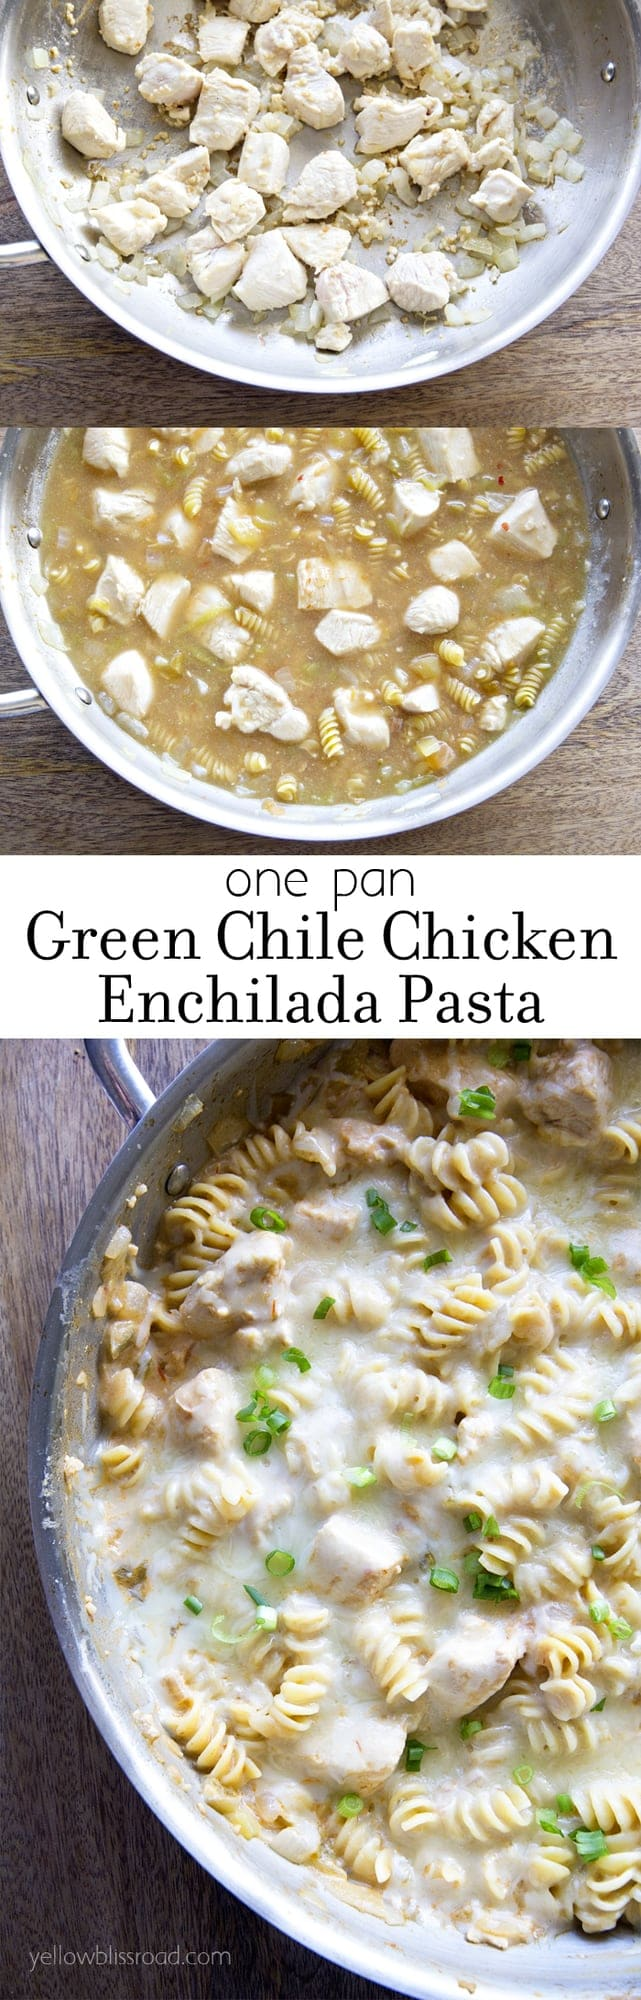 one pan green chilie chicken enchilada pasta collage